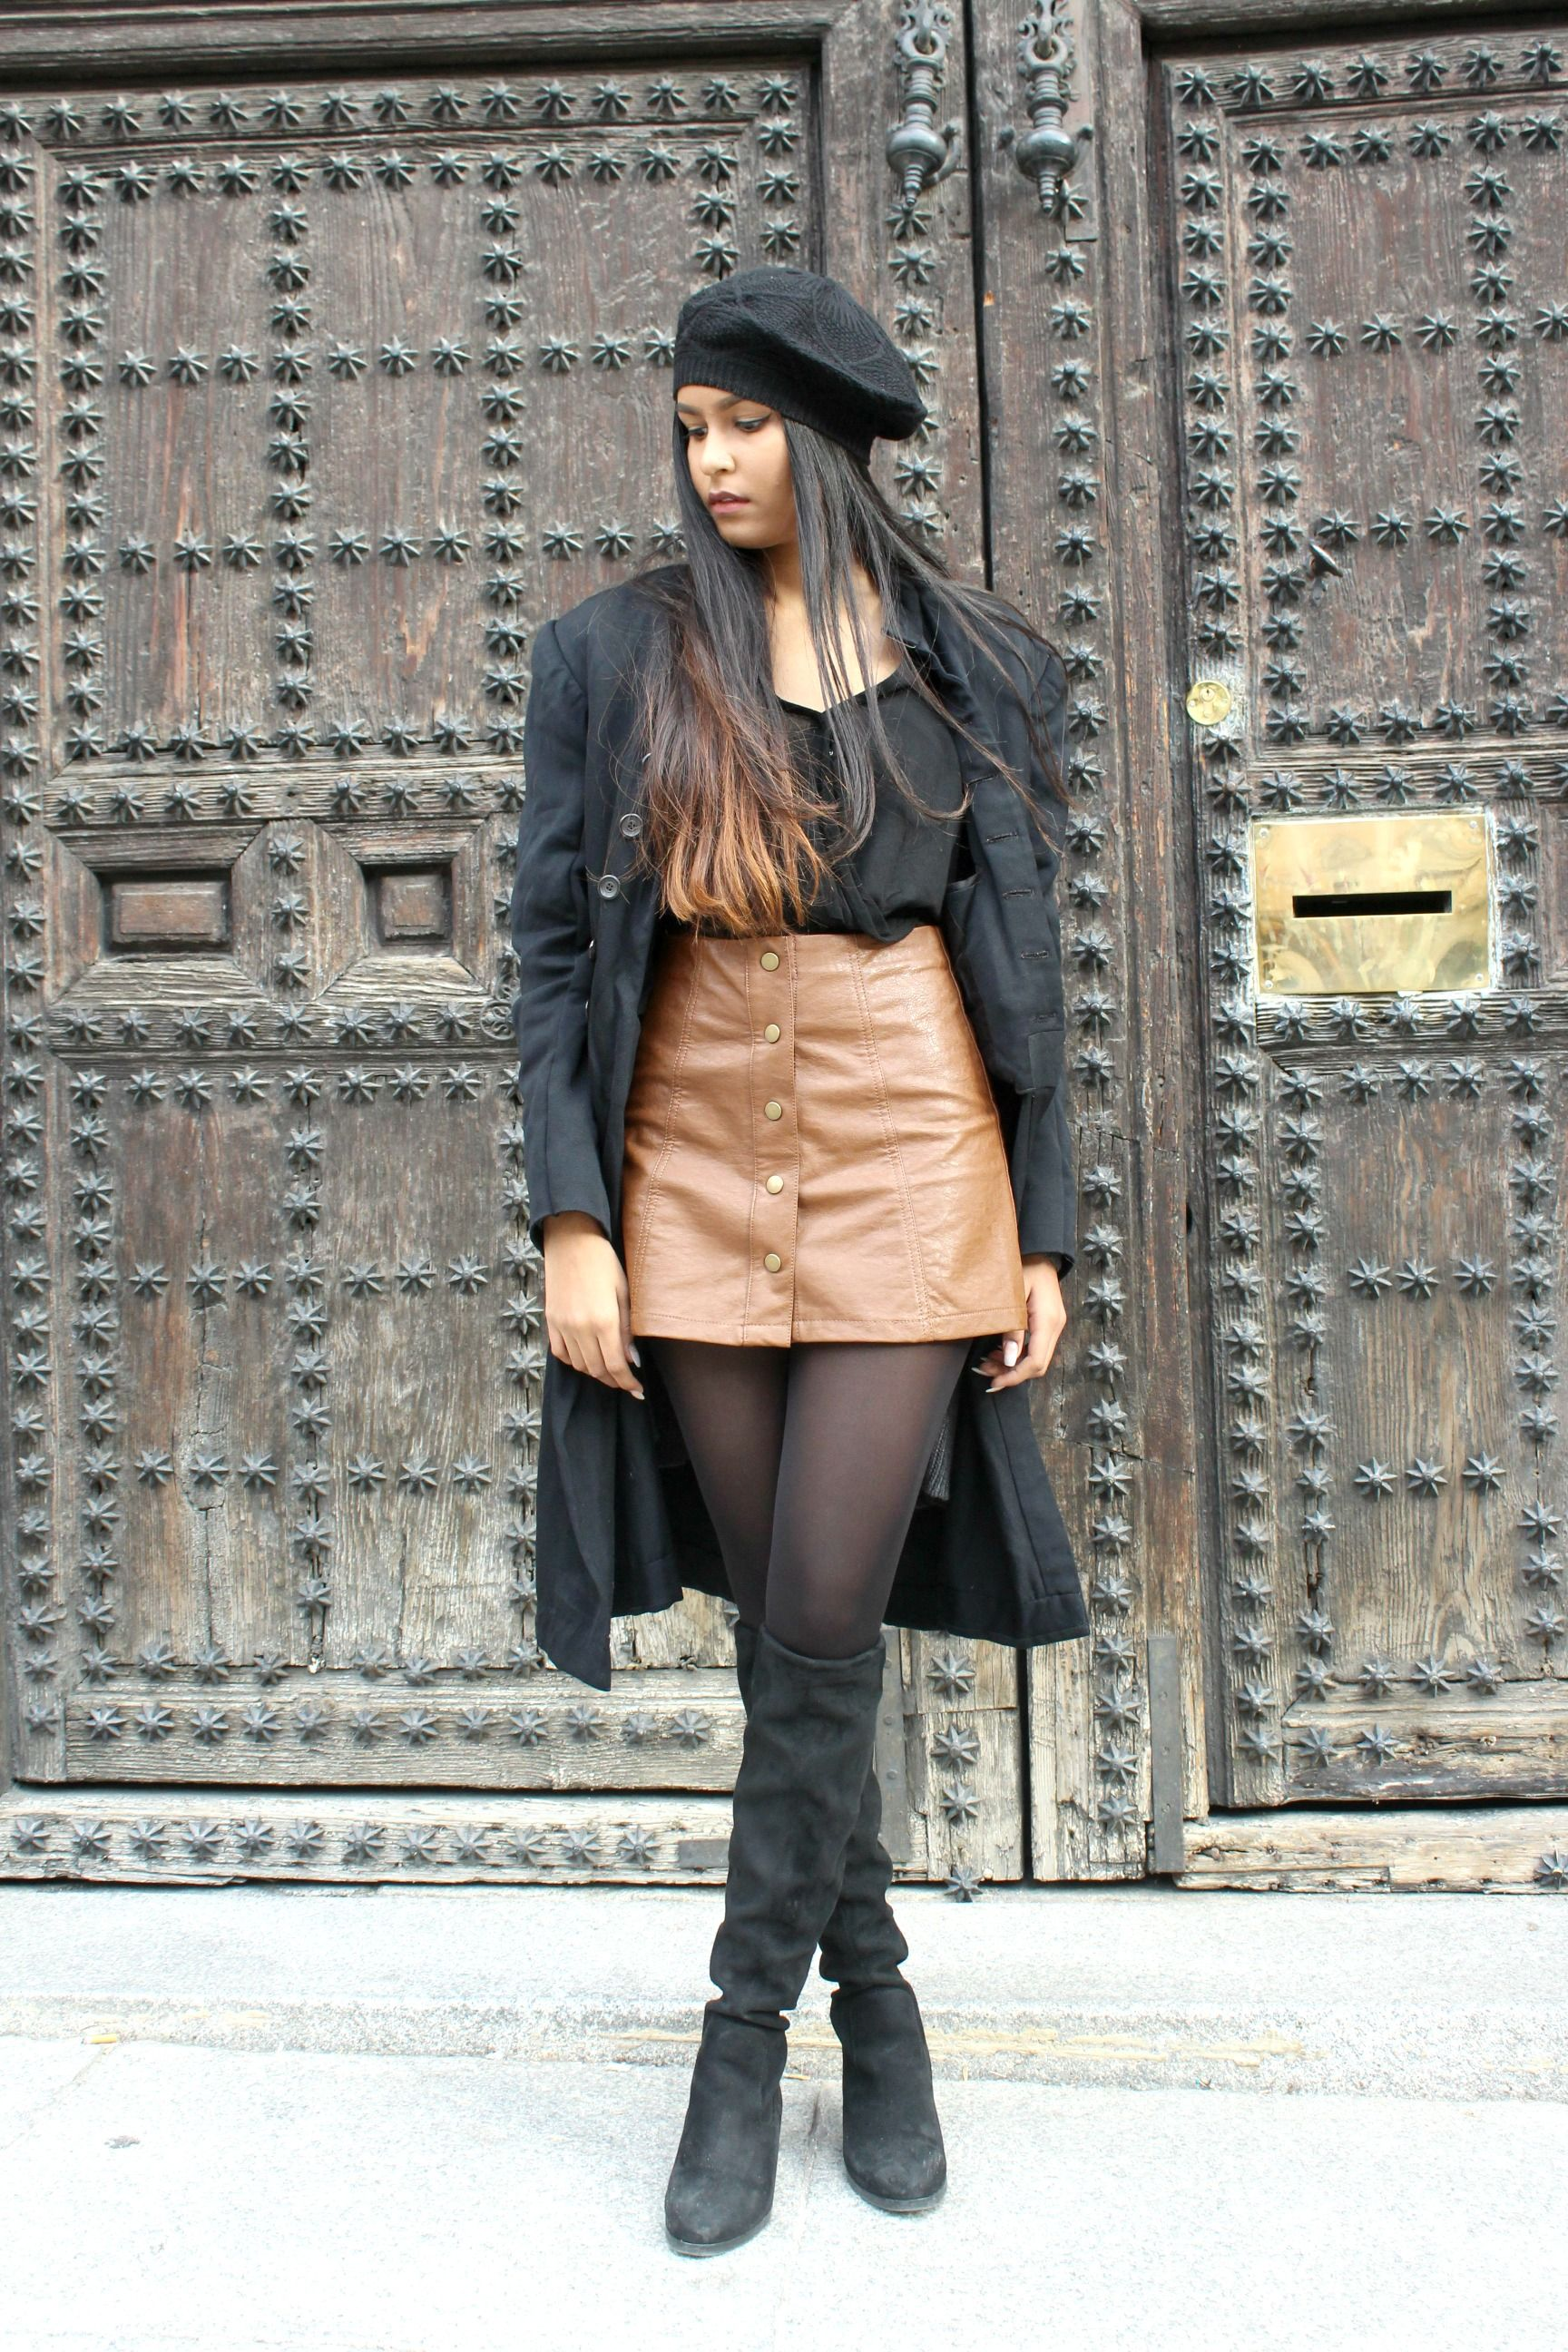 pantyhose in skirts